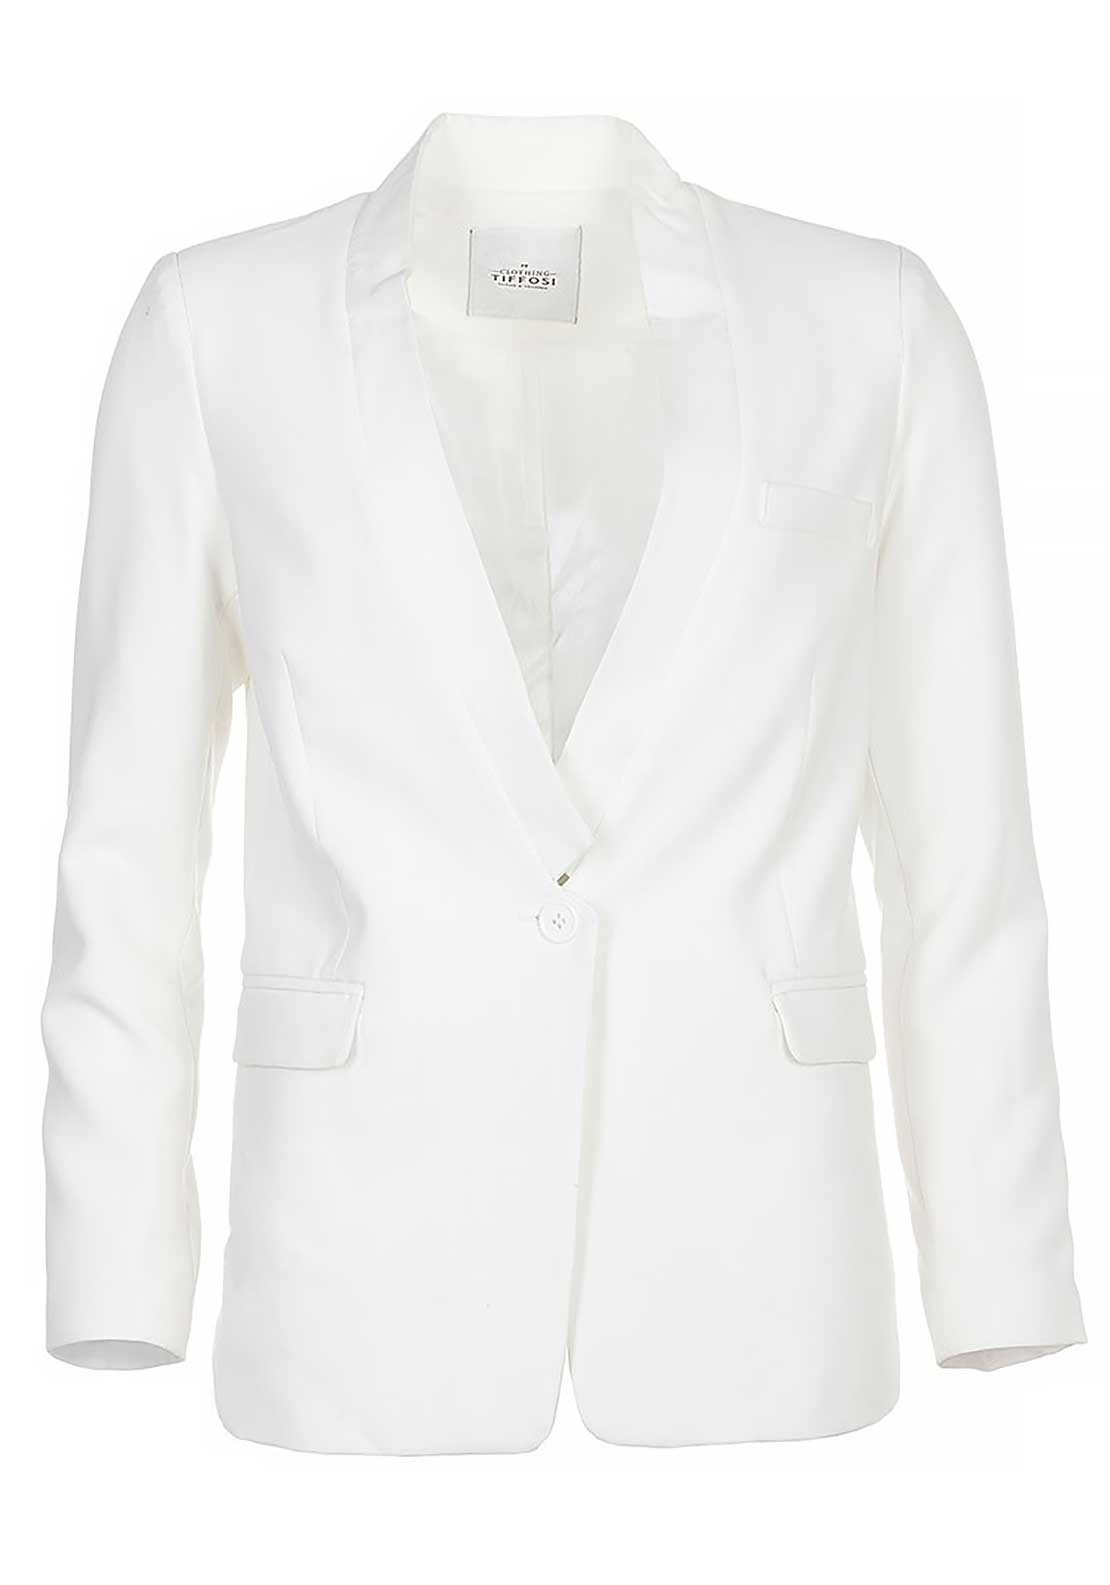 Tiffosi Womens Hagen Blazer Jacket, White